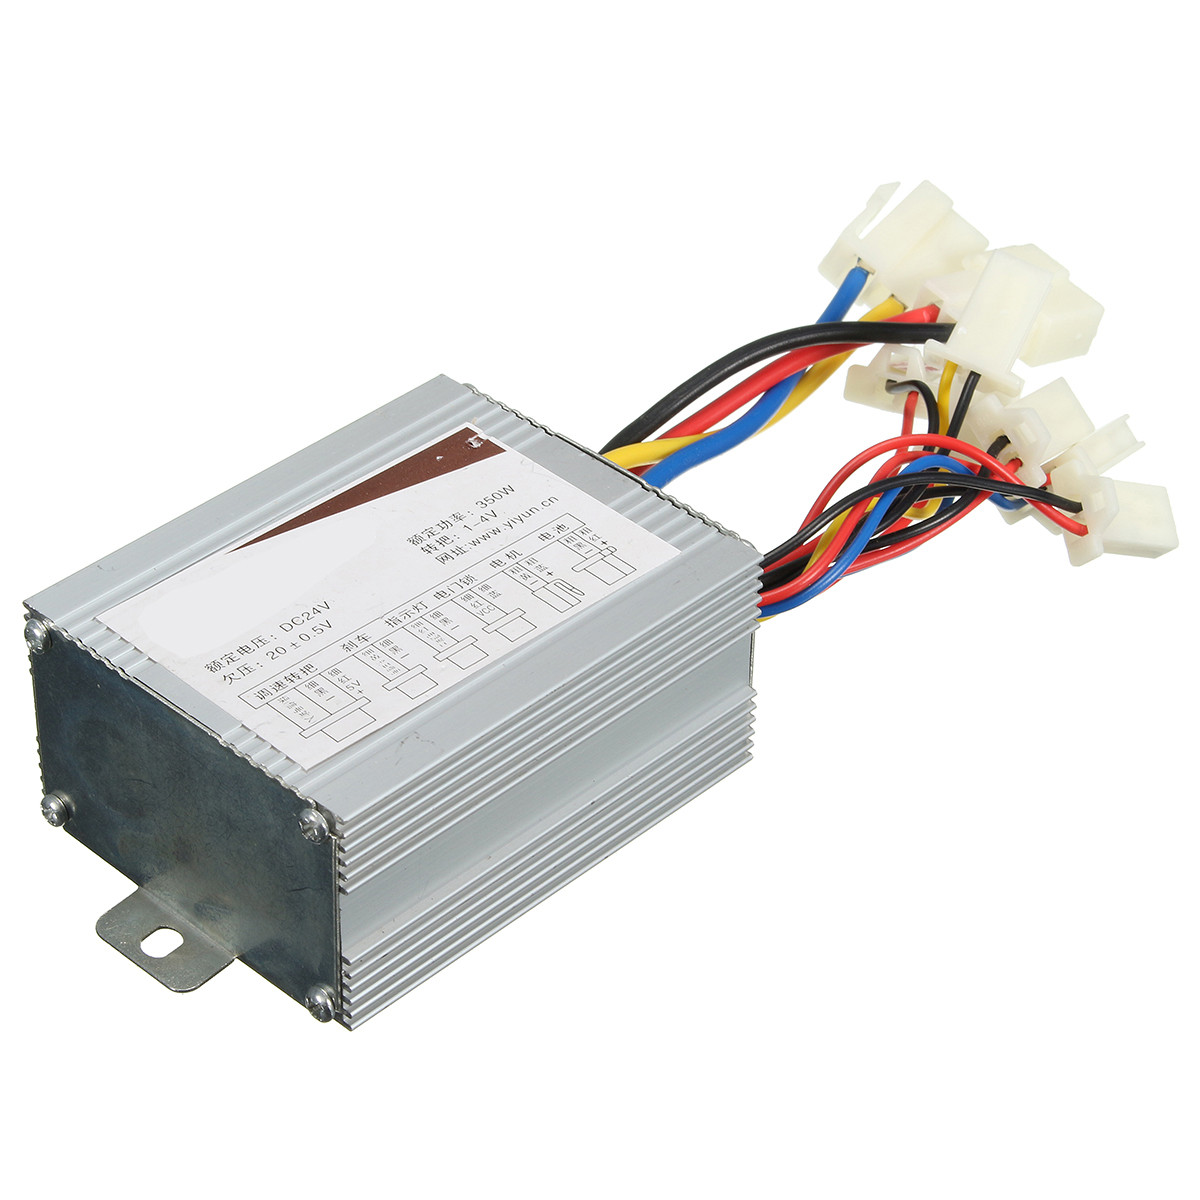 24V 350W Motor Brush Speed Controller For Electric Bike Bicycle